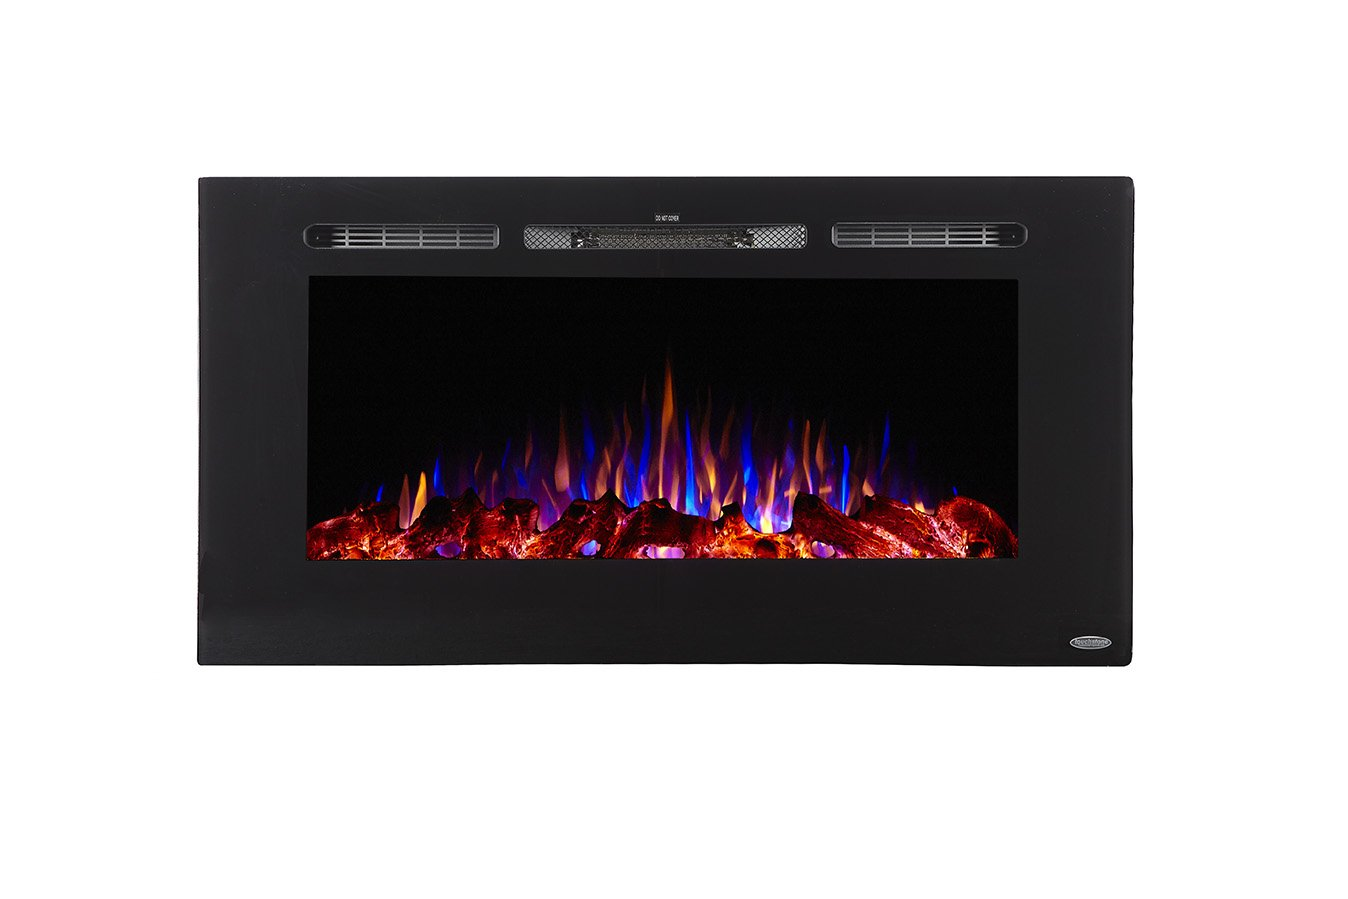 Touchstone Sideline40 80027 40 Inch Wall Recessed Electric Fireplace